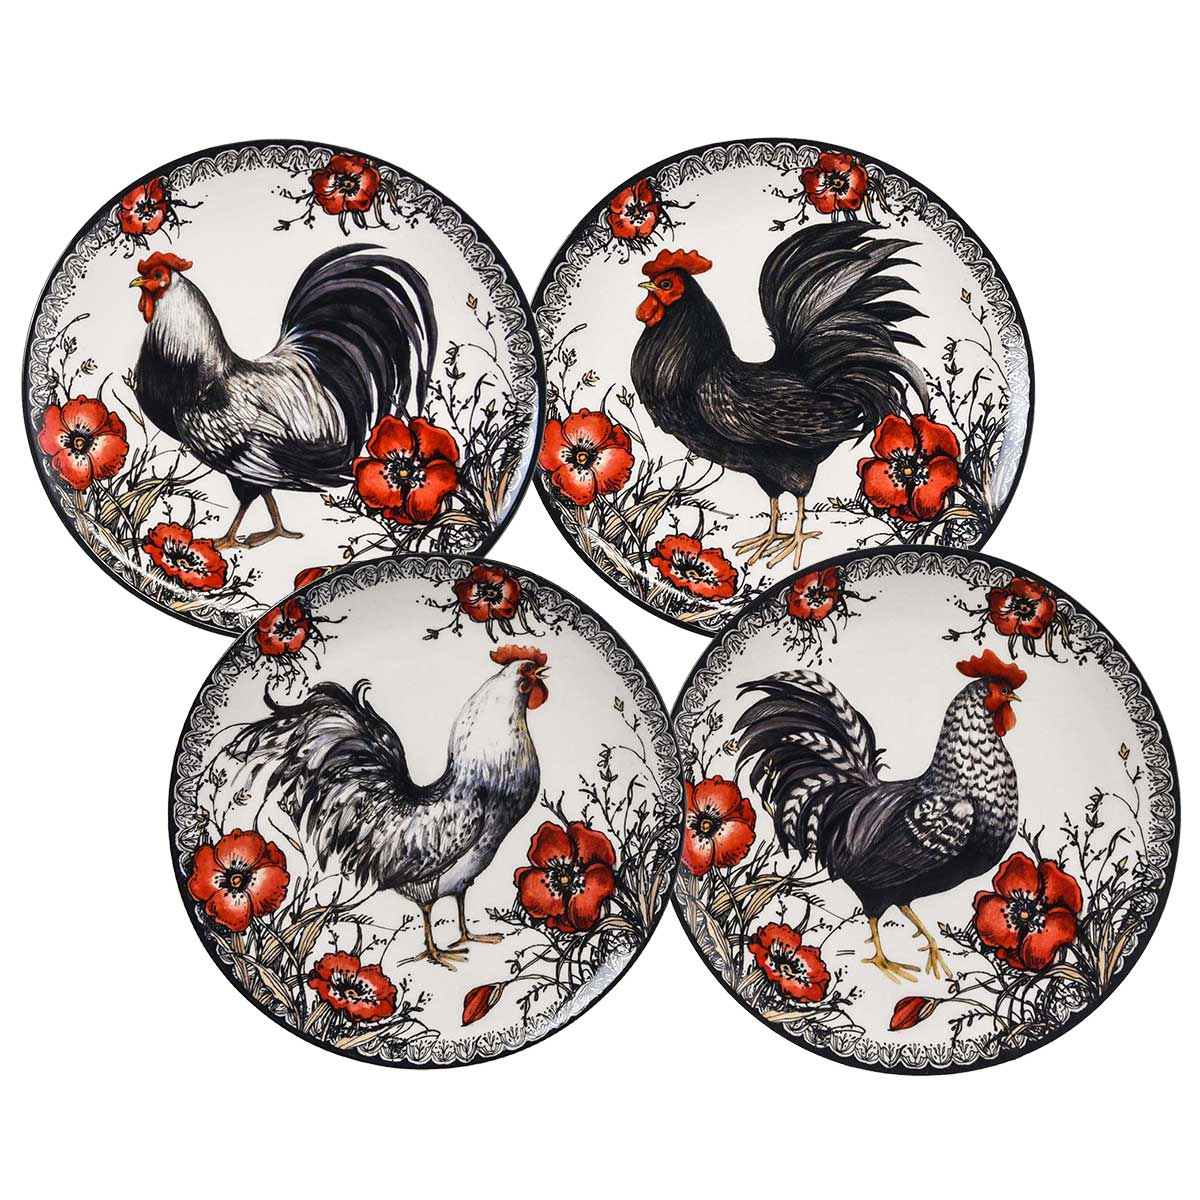 shop.crackerbarrel.com Stoneware Rooster 16-Piece Dinnerware Set - Cracker Barrel Old Country Store  sc 1 st  Cracker Barrel & shop.crackerbarrel.com: Stoneware Rooster 16-Piece Dinnerware Set ...